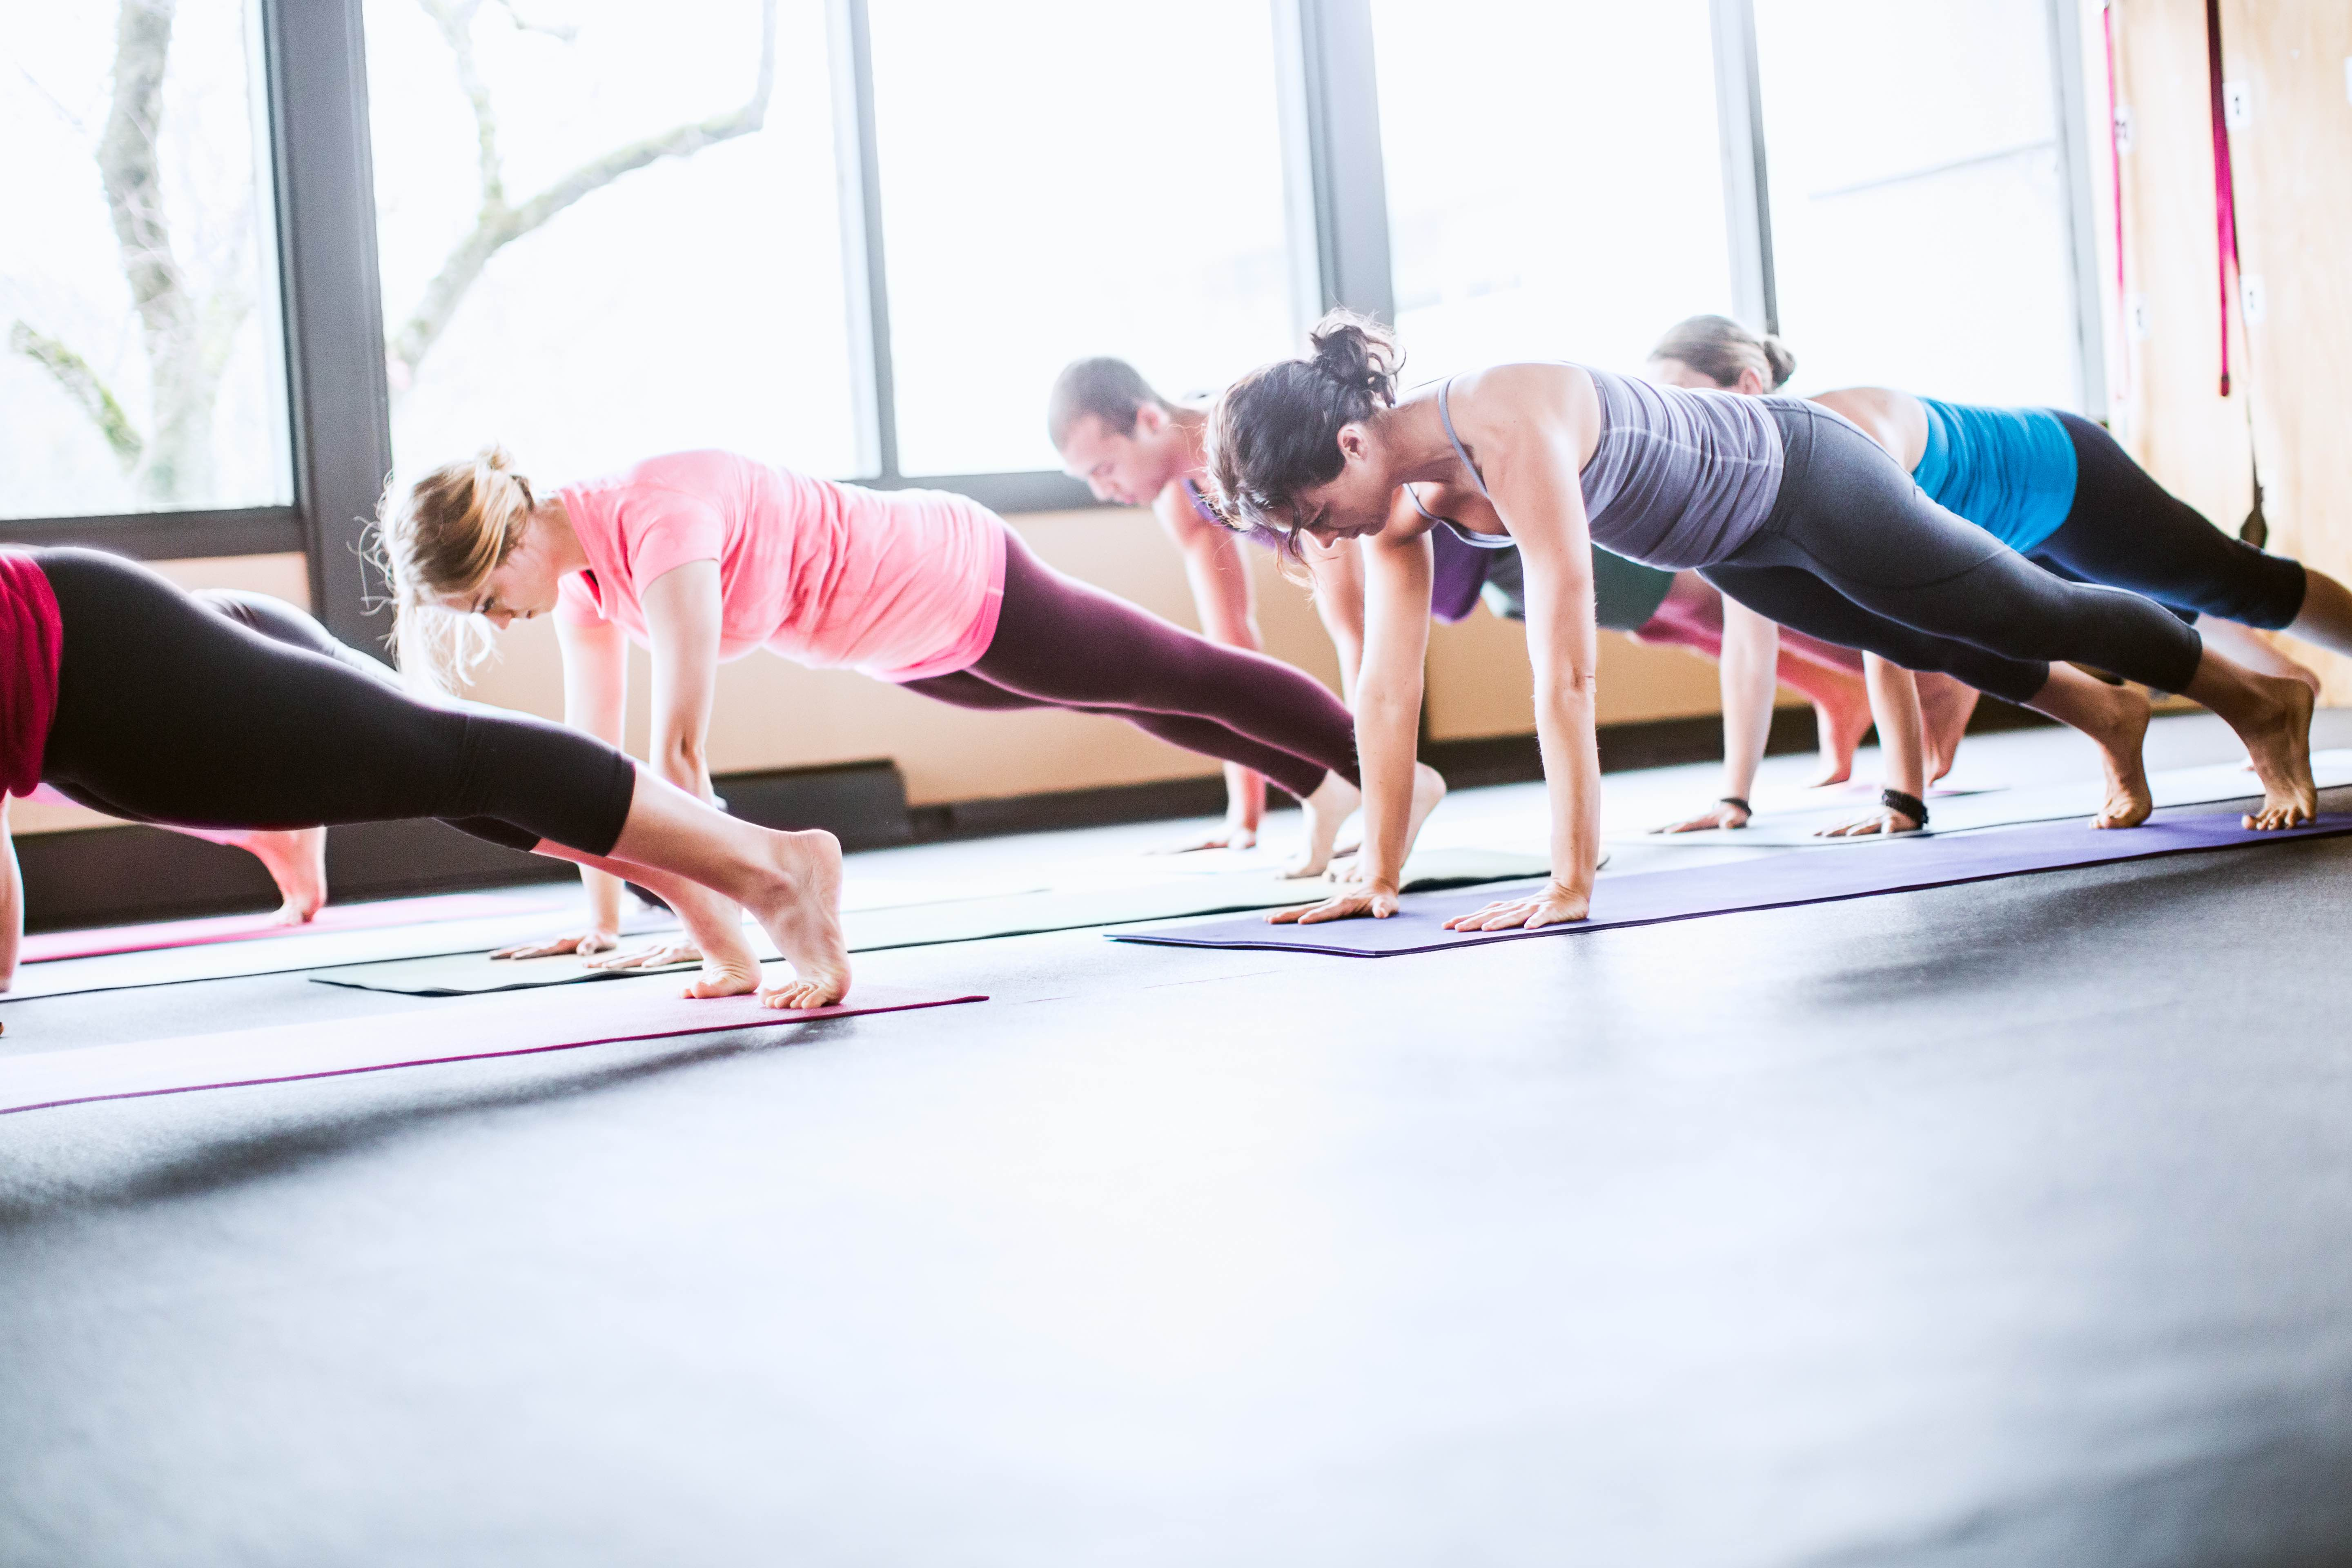 A mixed ethnicity group of men and woman practice different yoga forms and positions in a bright well lit studio.  Here they are in plank pose, or Uttihita Chaturanga Dandasana.  Horizontal with copy space.